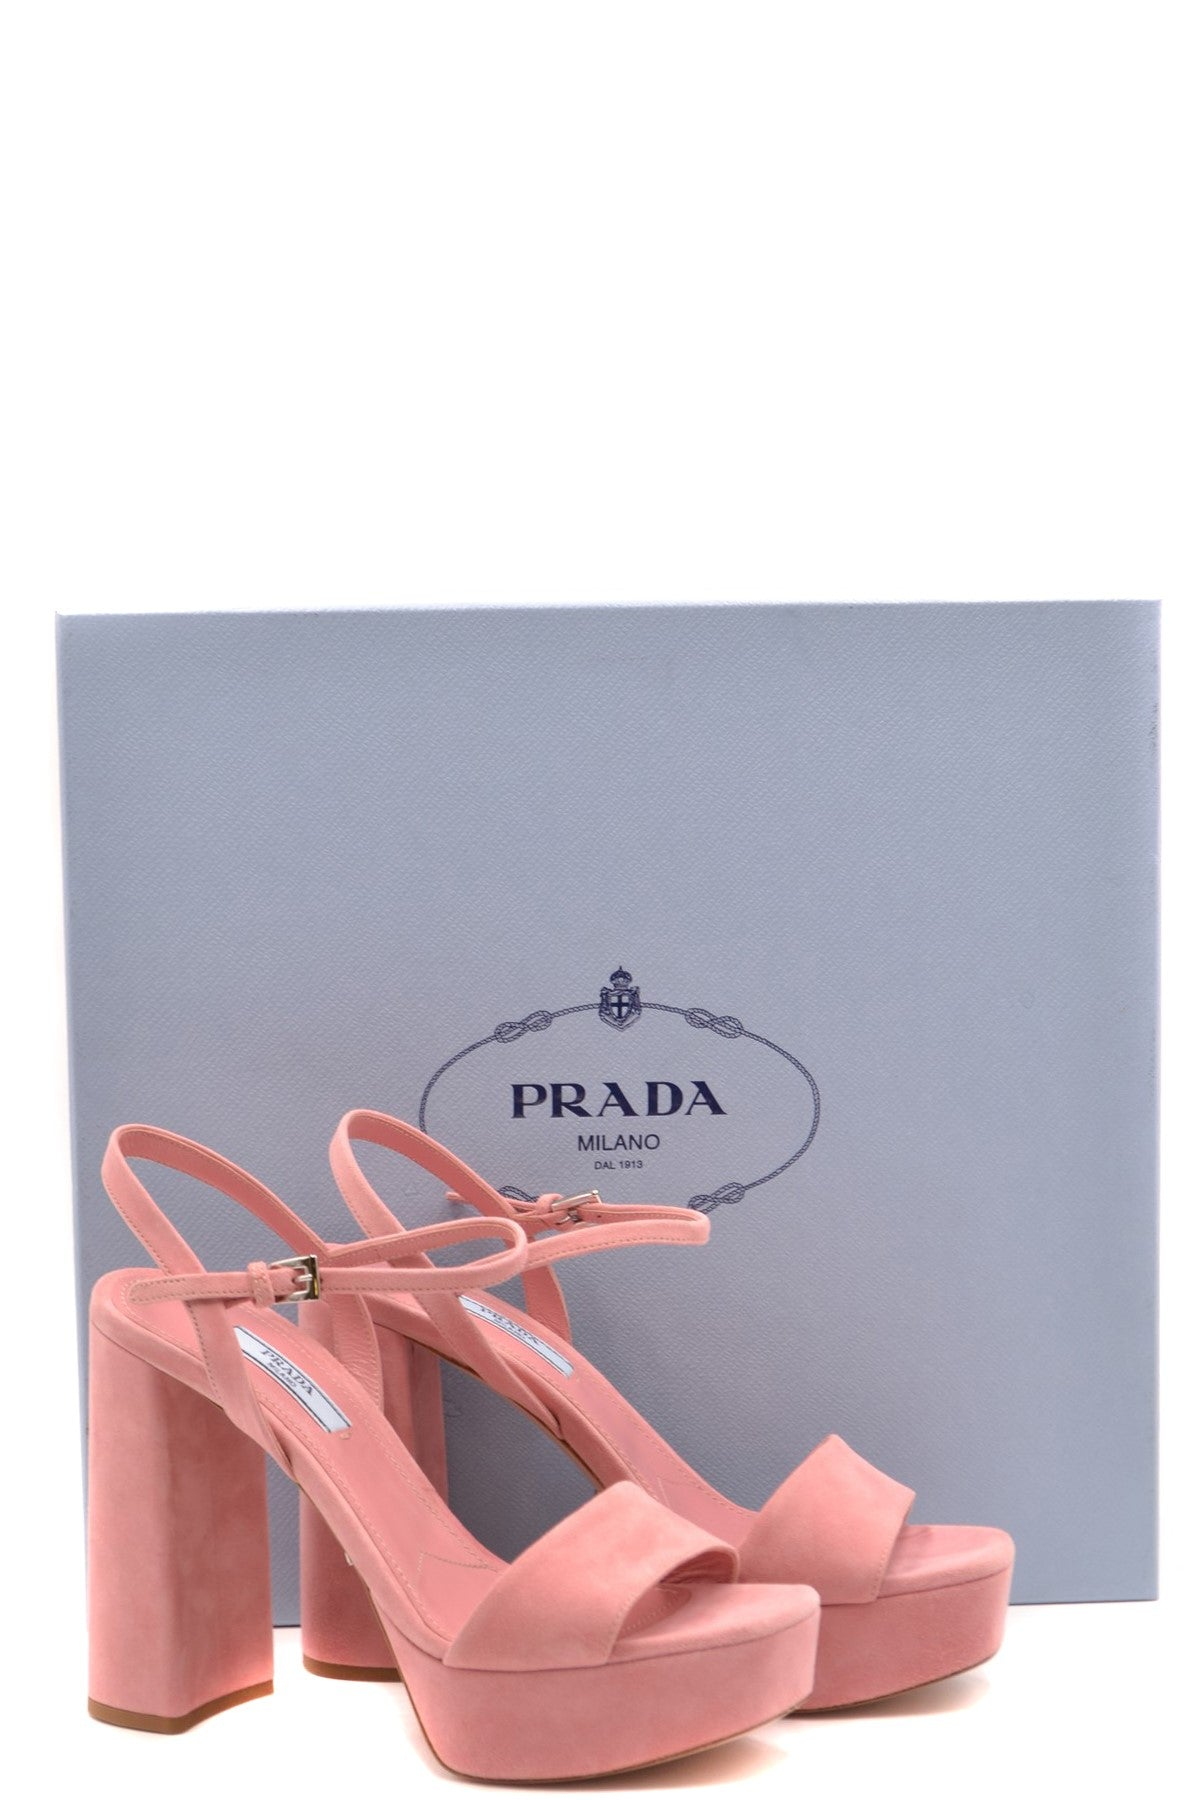 Shoes Prada-Women's Fashion - Women's Shoes - Women's Sandals-Product Details Terms: New With LabelMain Color: PinkType Of Accessory: ShoesSeason: Spring / SummerMade In: ItalyGender: WomanHeel'S Height: 12Size: EuComposition: Chamois 100%Year: 2020Manufacturer Part Number: 1Xp75A 008 F0025-Keyomi-Sook